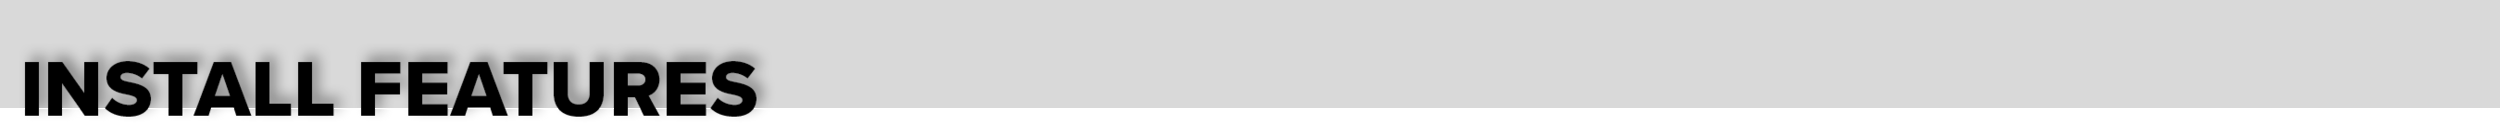 Install Features Banner (Gray) 2.png